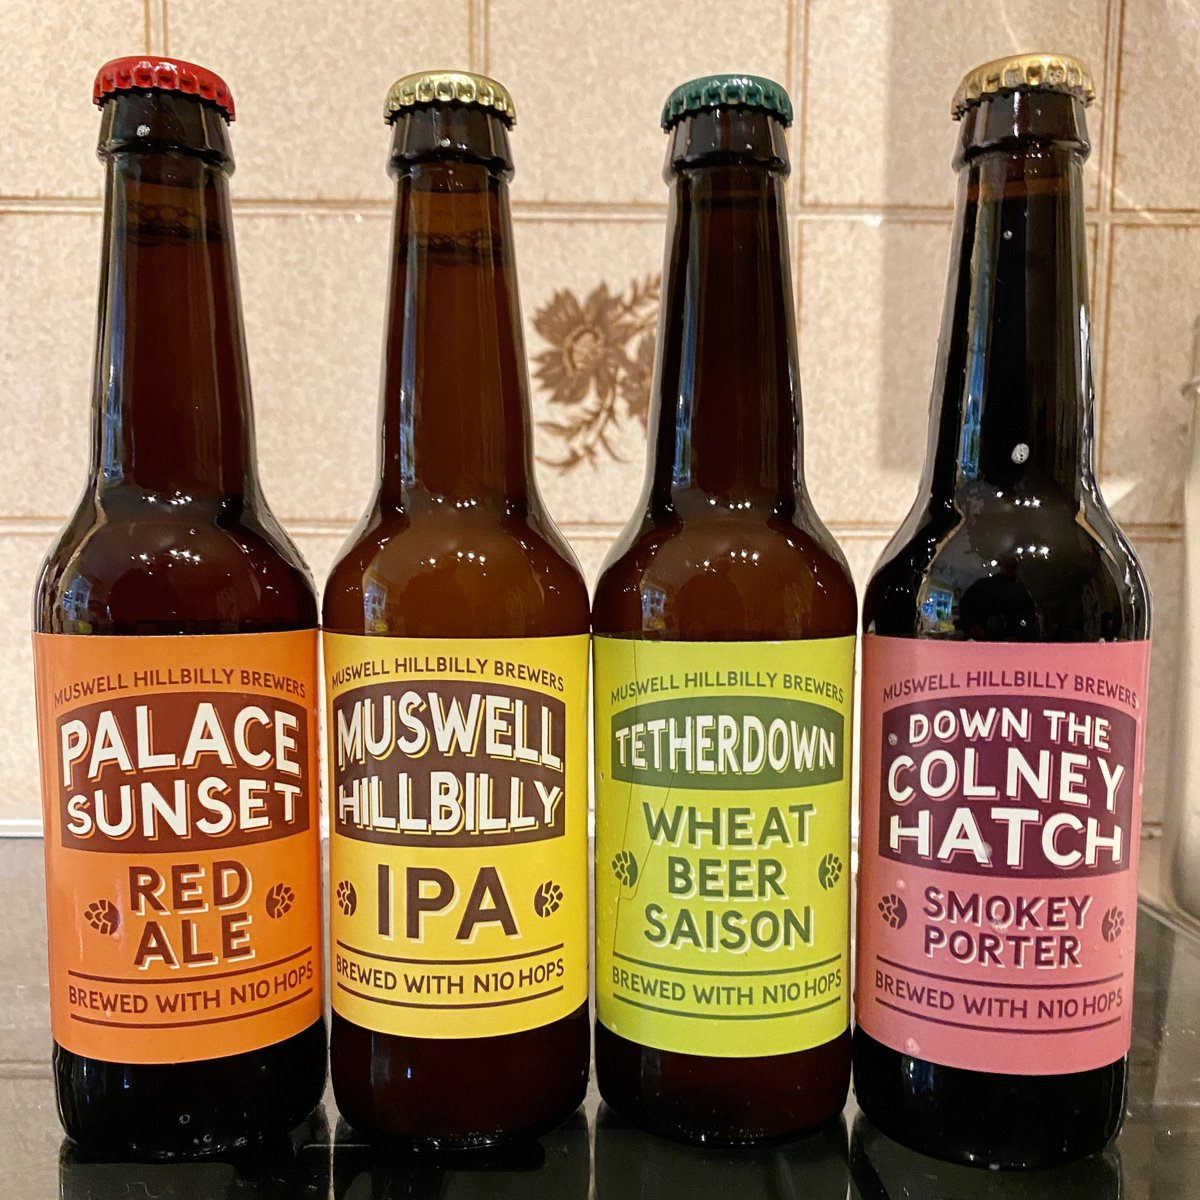 Latest beer delivery arrived, a nice selection from @MusHillBrewers to keep my sheltering lightly lubricated... #SupportYourLocalBrewer https://t.co/uAROAhe6jk